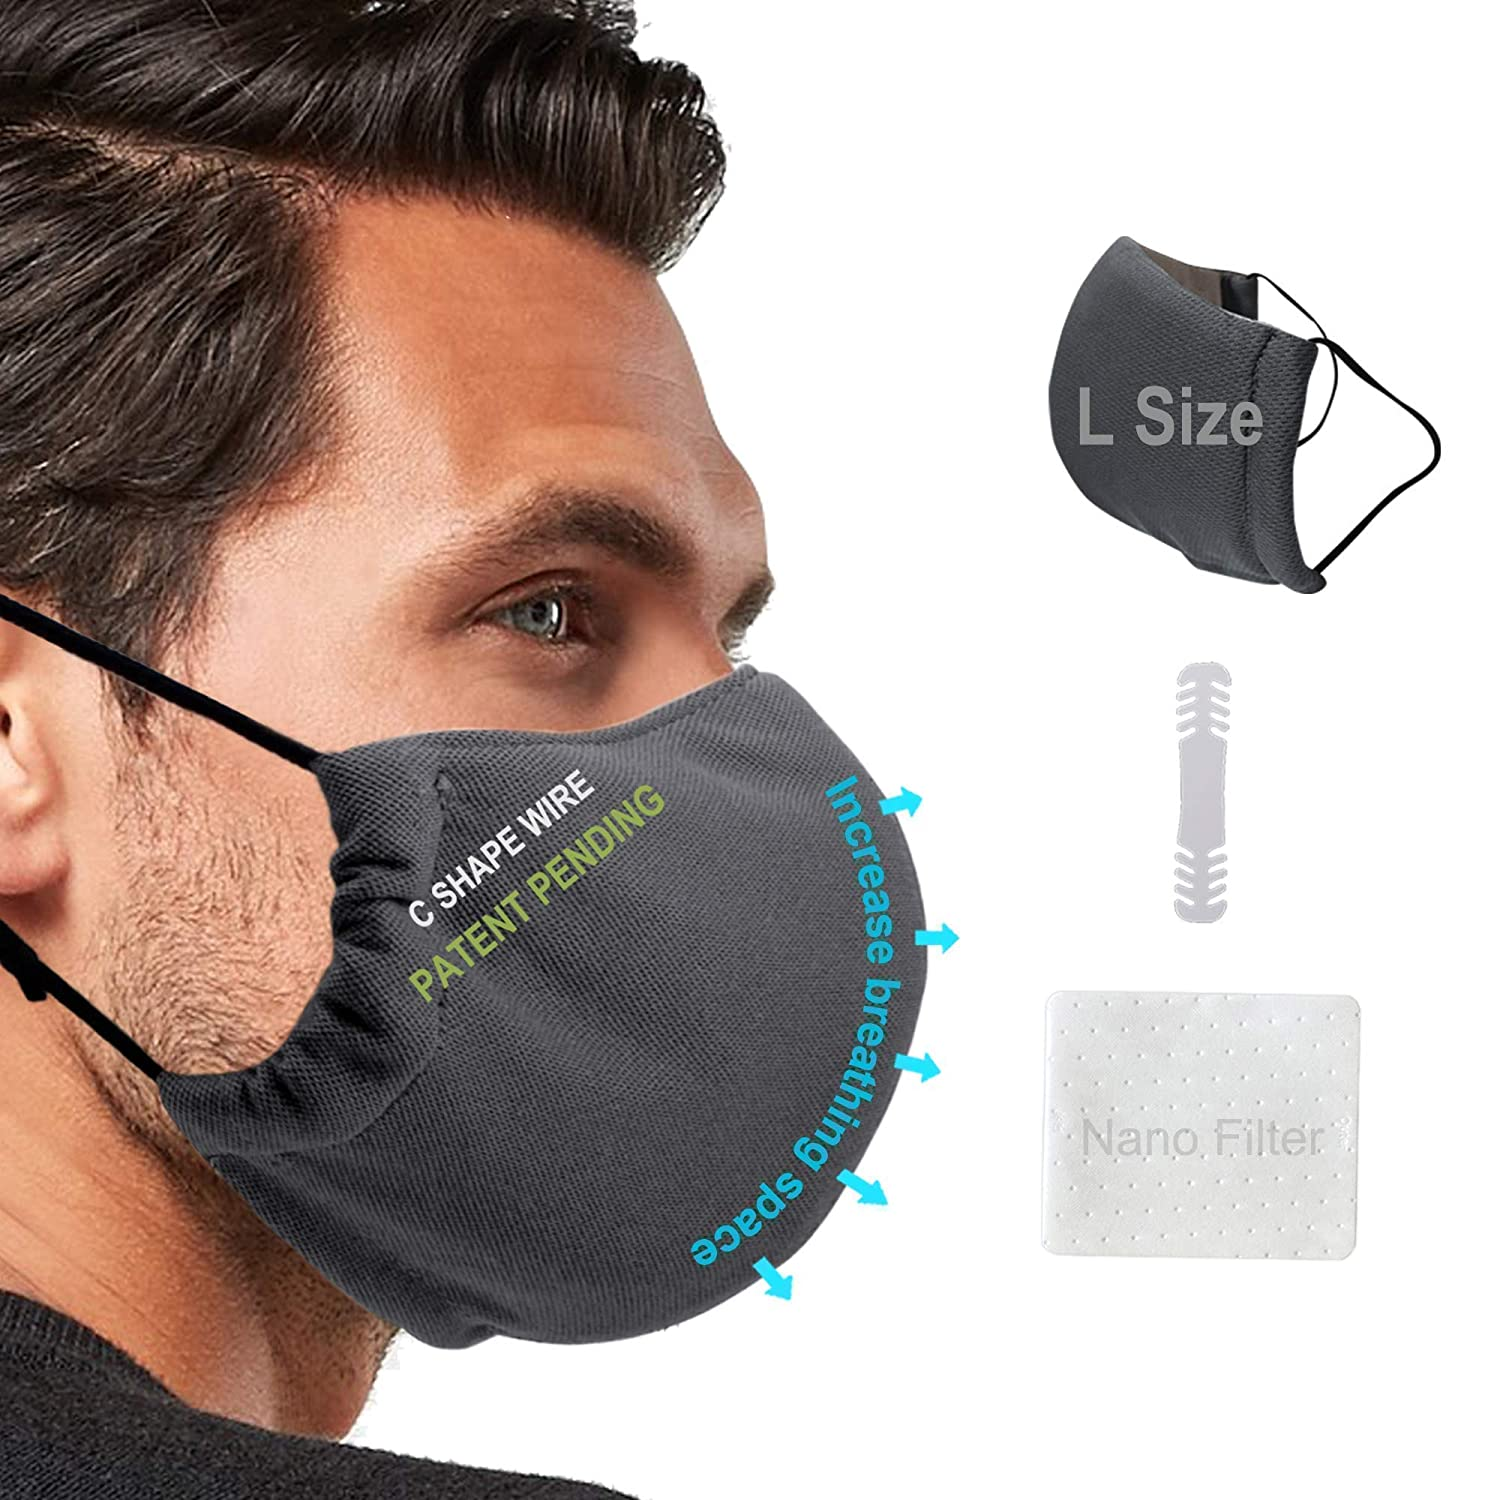 IN STOCK IN THE USA Reusable Breathing Sport Mask with 2 filters